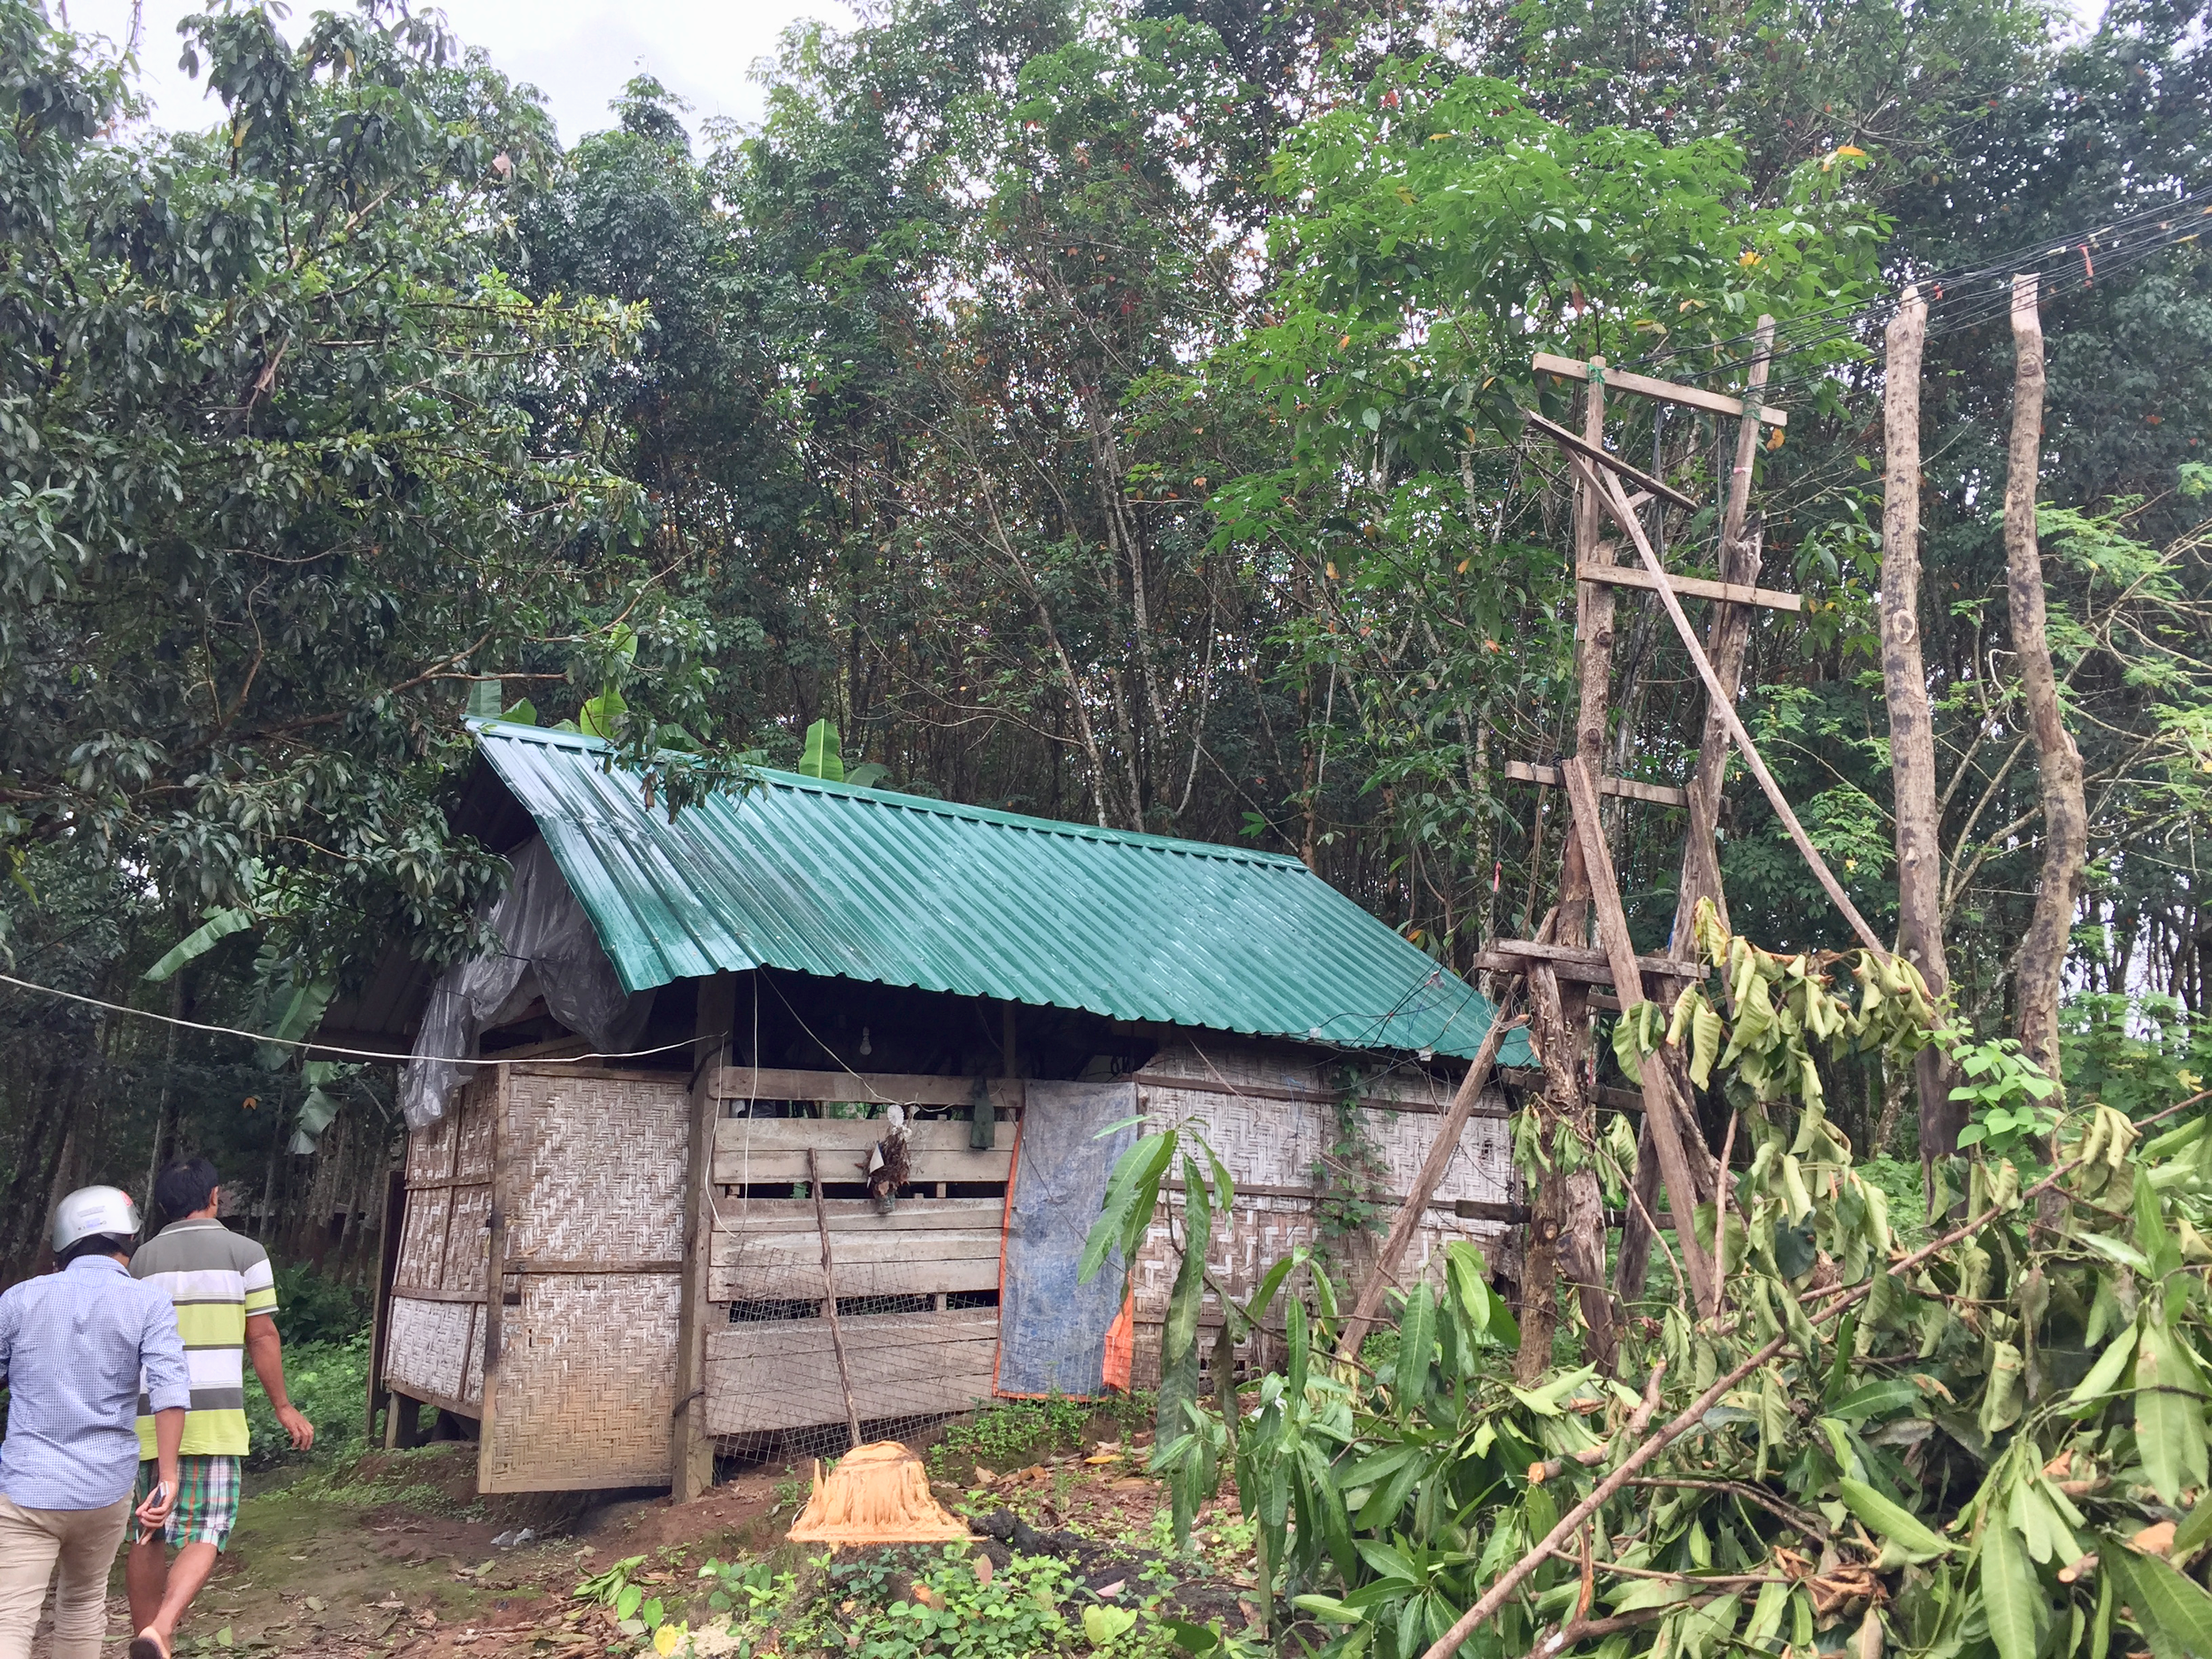 The building that houses Aung Moe Win's generator and the initial set of distribution poles that go to the households in the village.